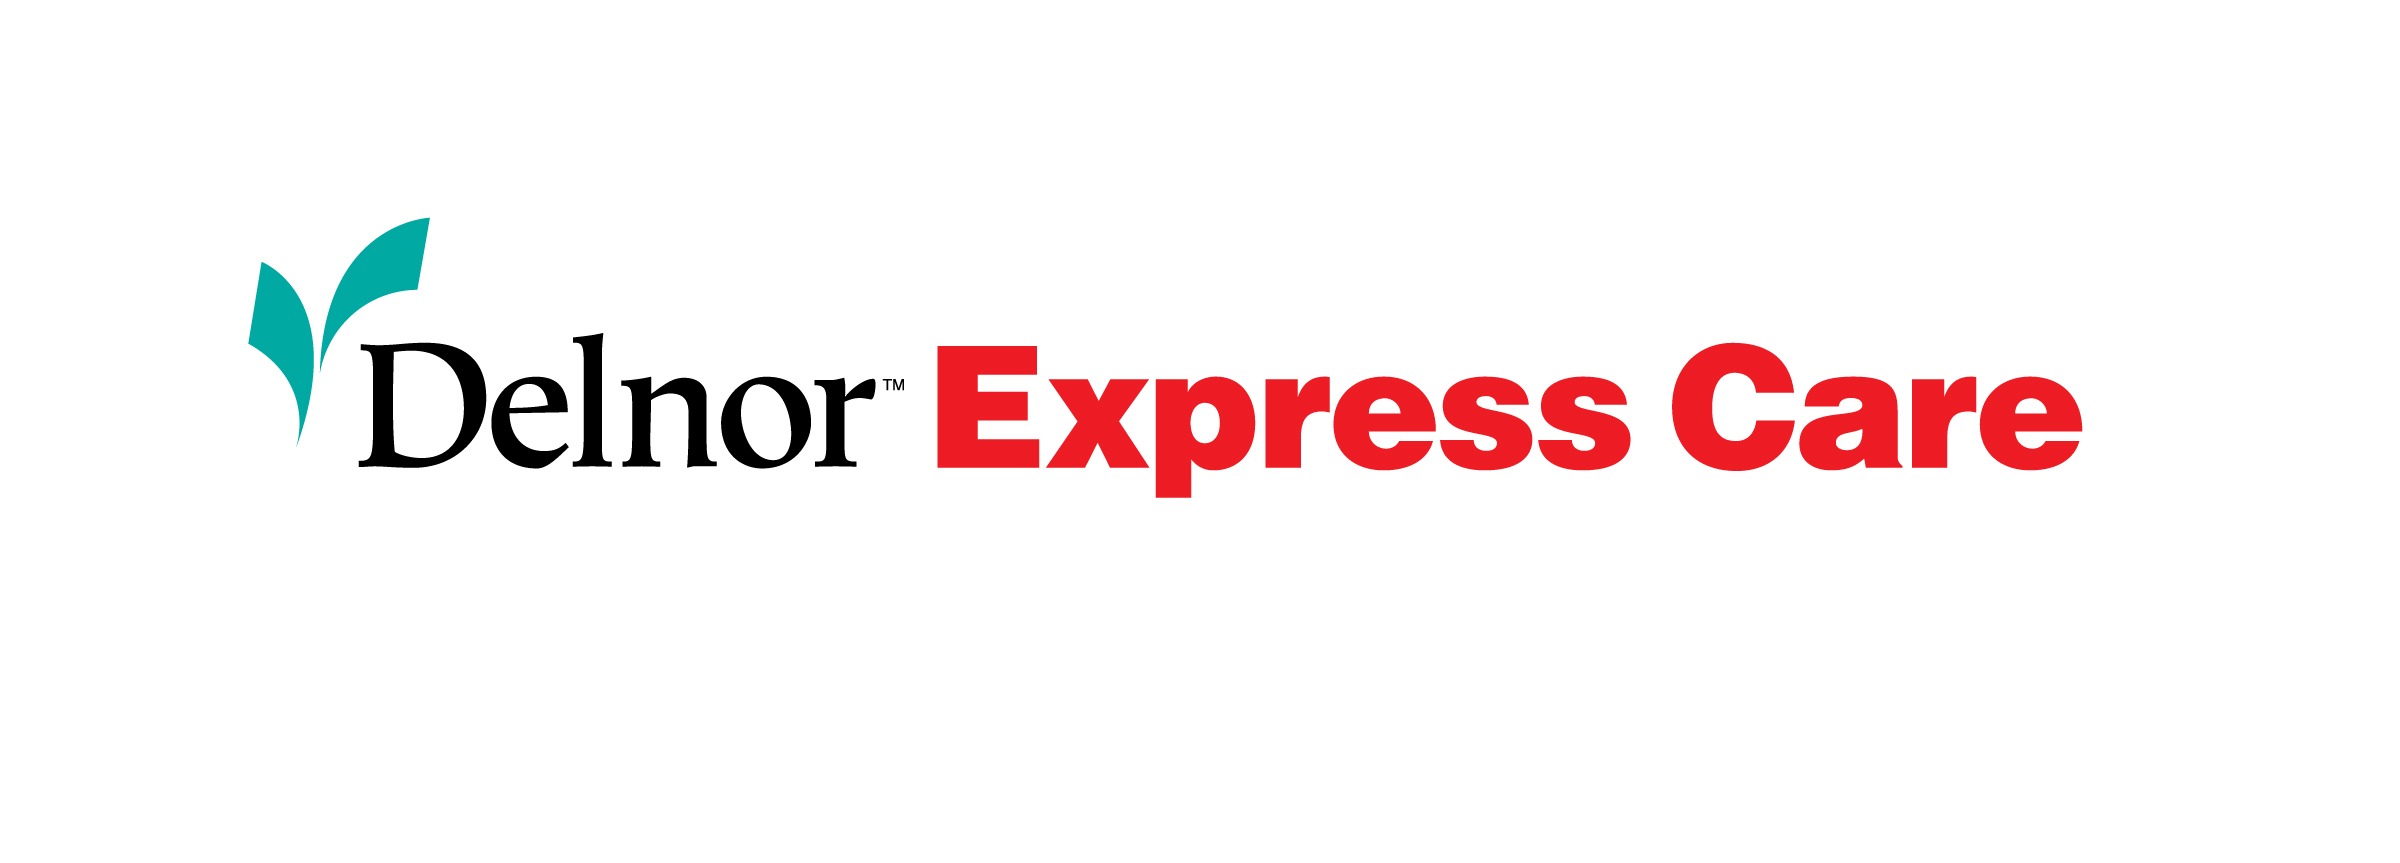 delnor express care